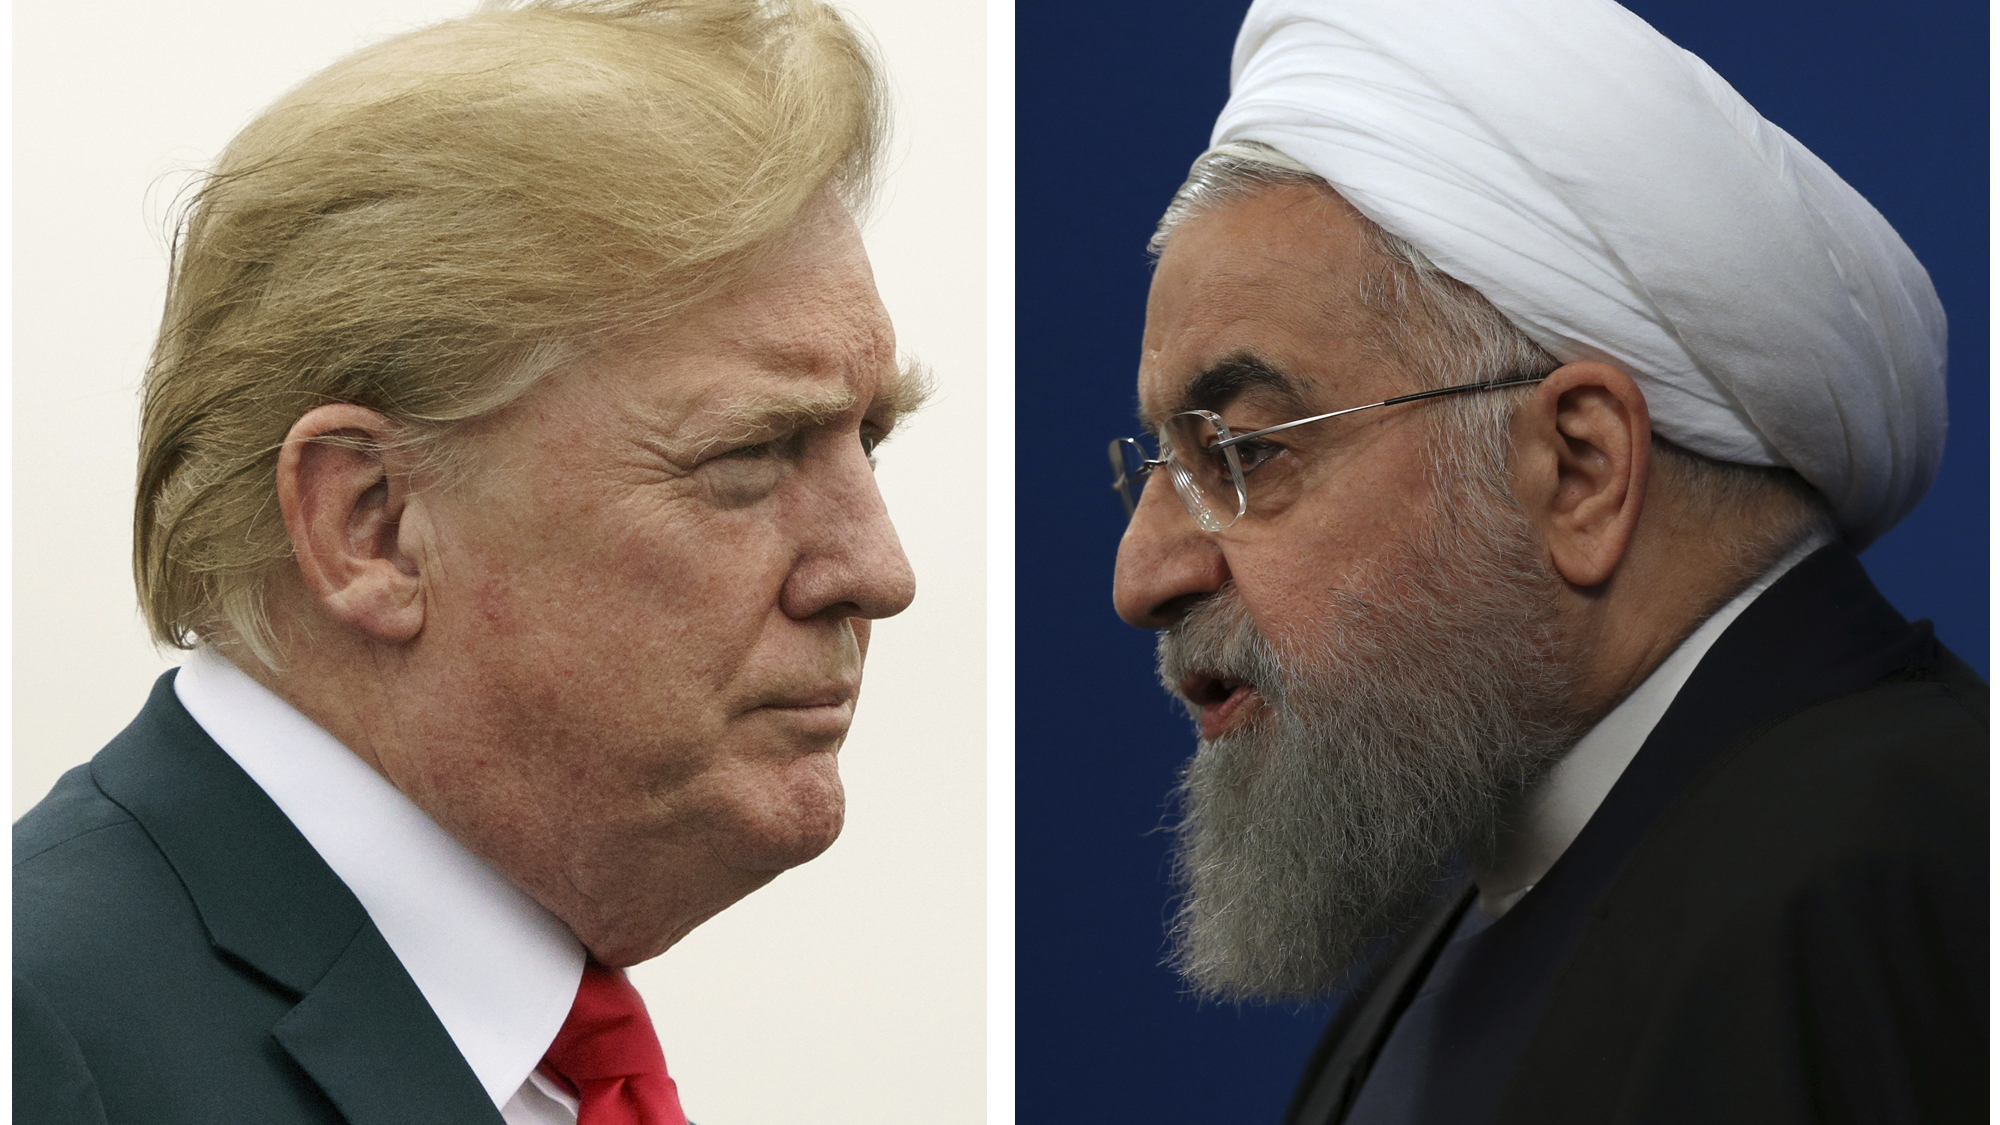 'Never threaten USA again': Donald Trump fires back 'consequences' at Iran's Rouhani